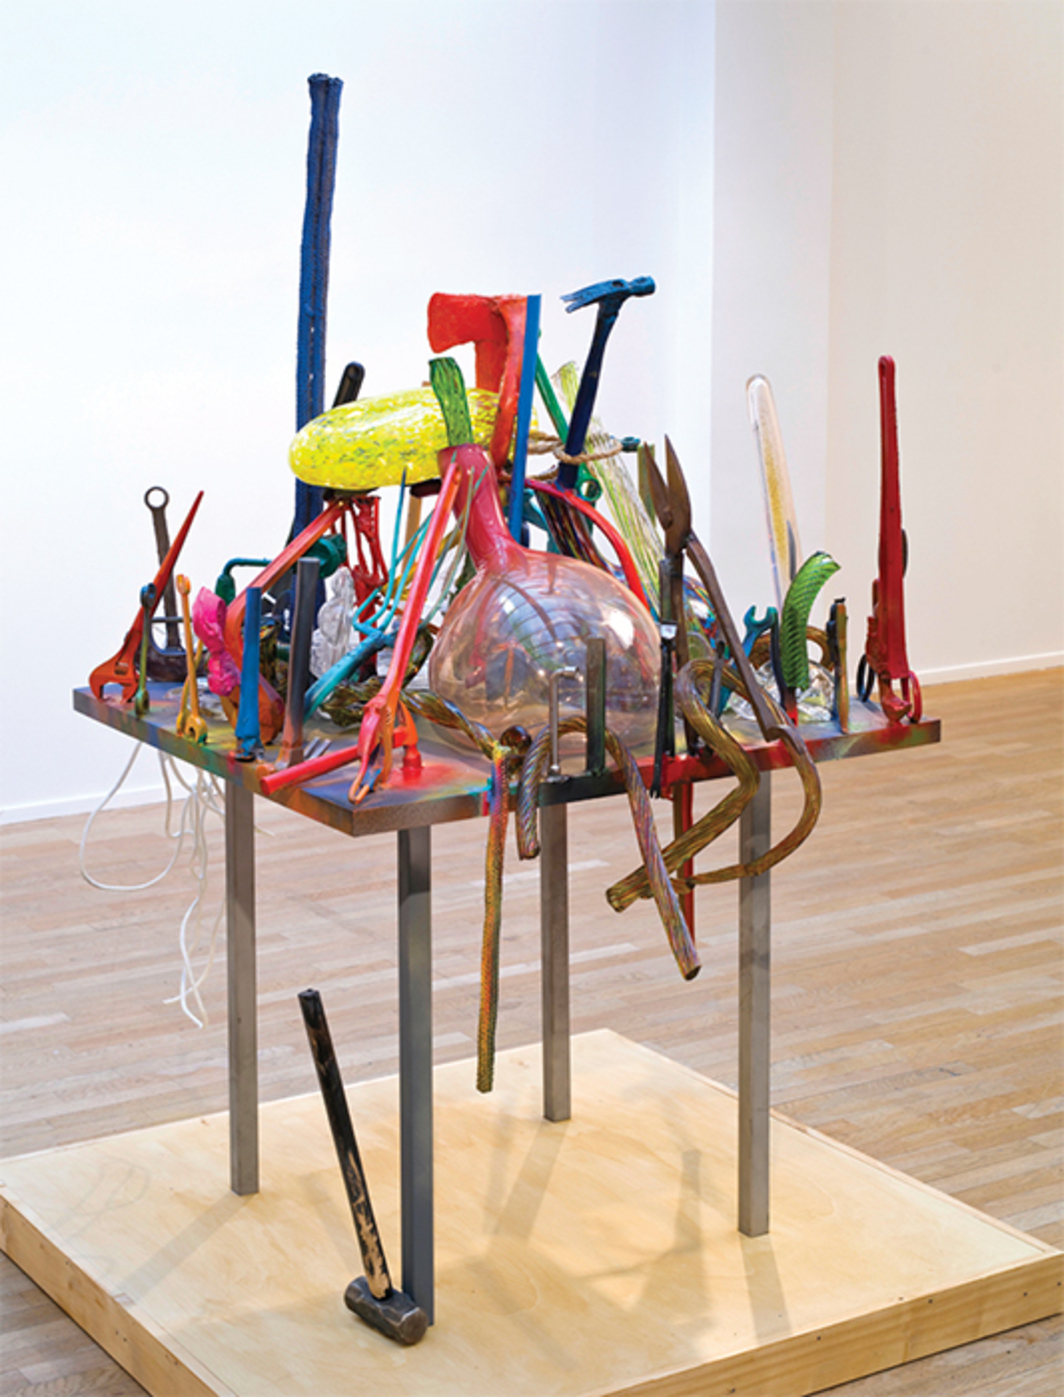 "Jim Dine, City of Glass #3, 2014, bronze, glass, stainless steel, found objects, lacquer, 77 × 45 × 56""."